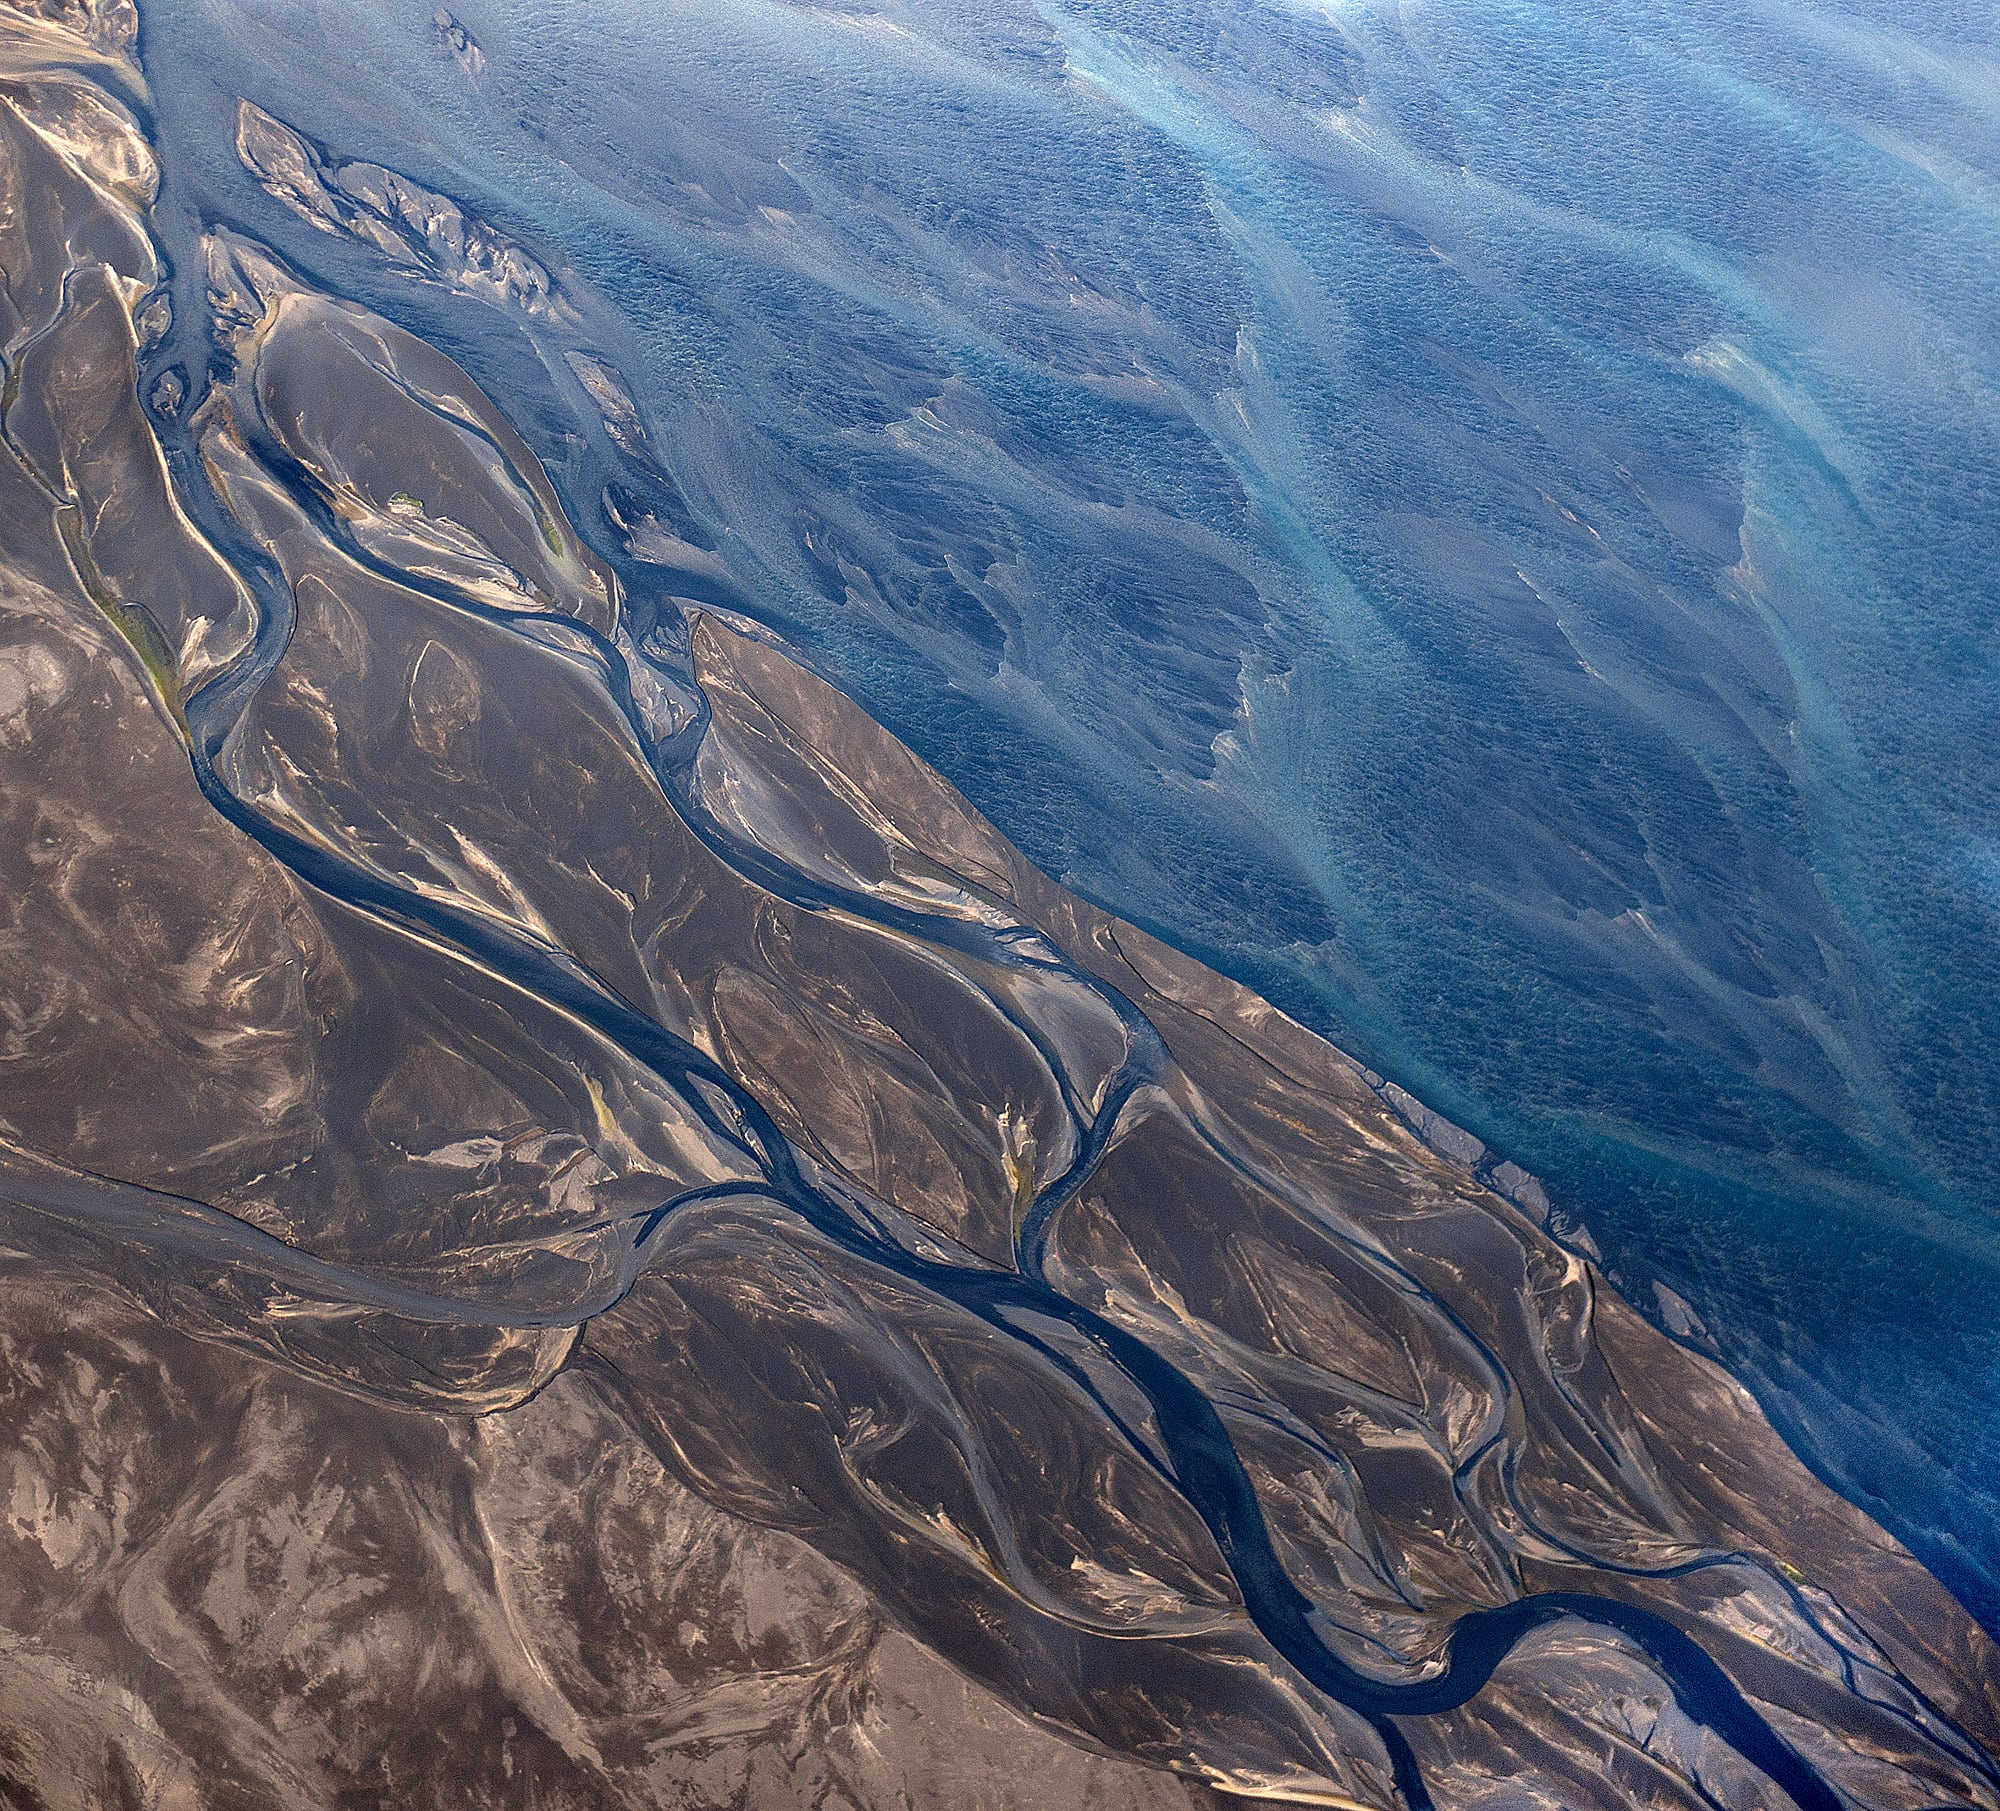 Stunning Aerial Photos Of Icelandic Rivers From Above -river, photos, nature, mountains, landscapes, Iceland